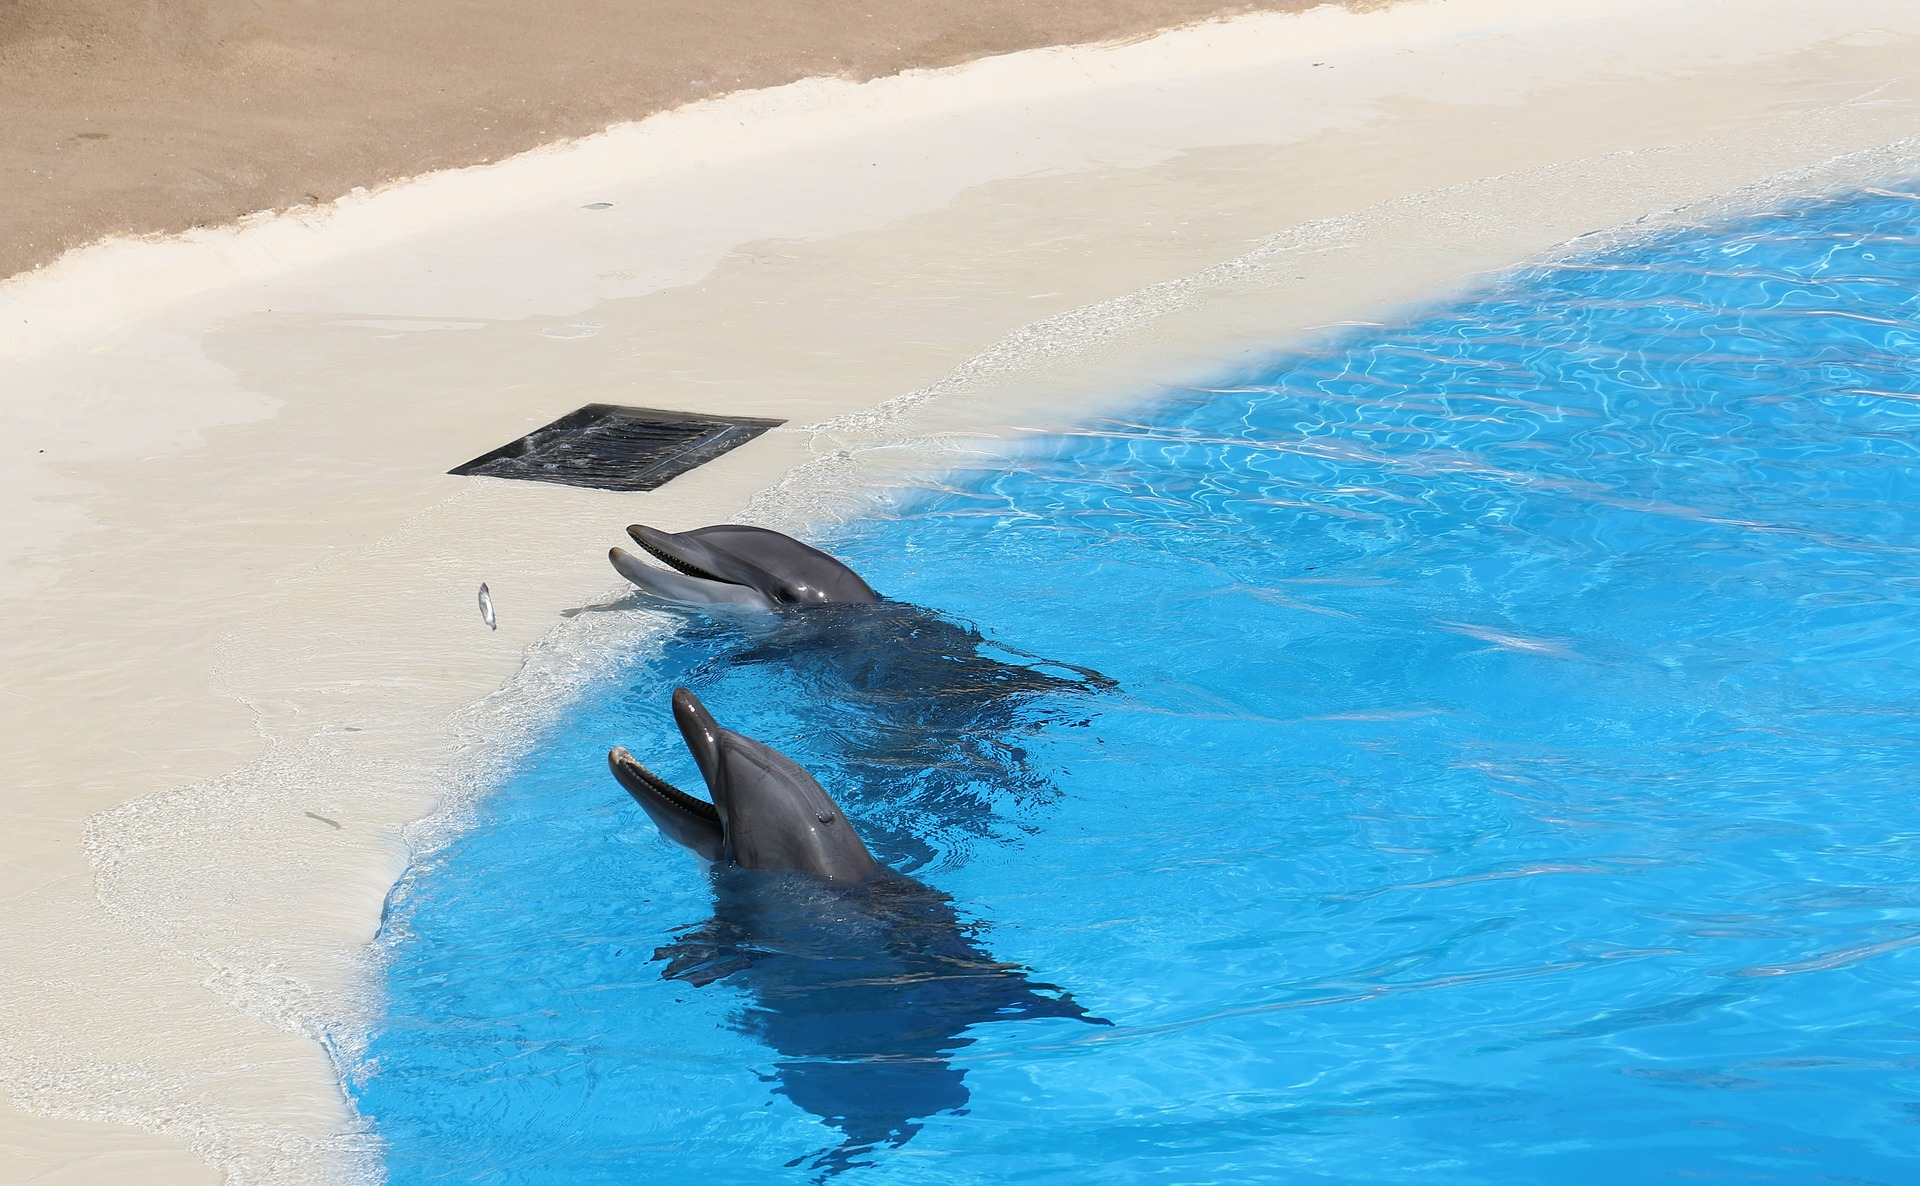 Dolphins at a dolphinarium: stress in captive dolphins